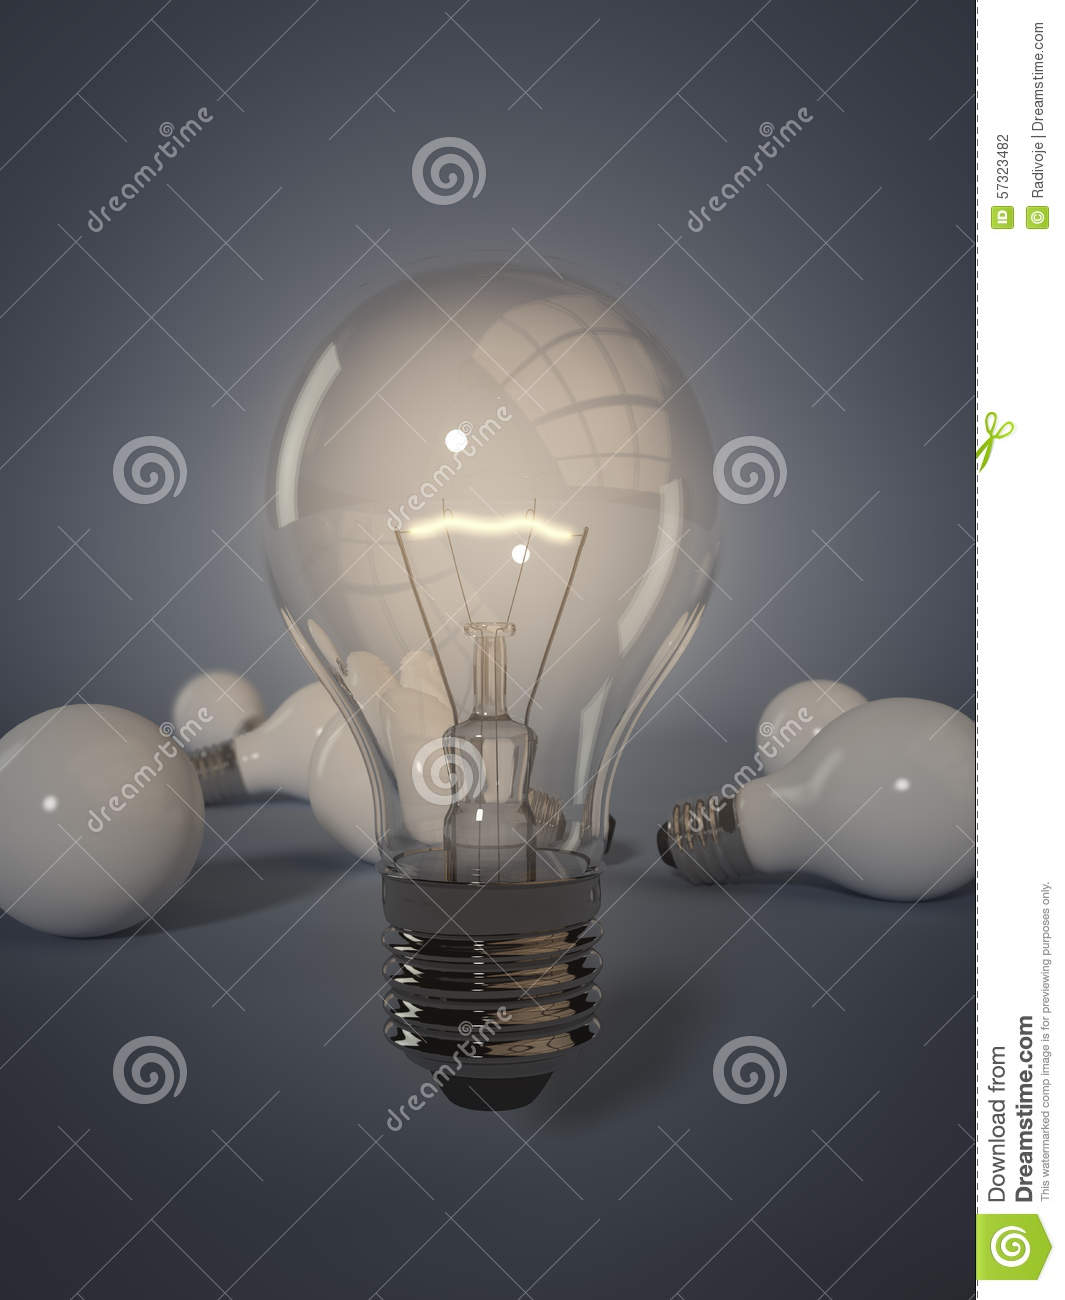 Stadium Lights Light Bulb: Stand Out From The Crowd Stock Illustration